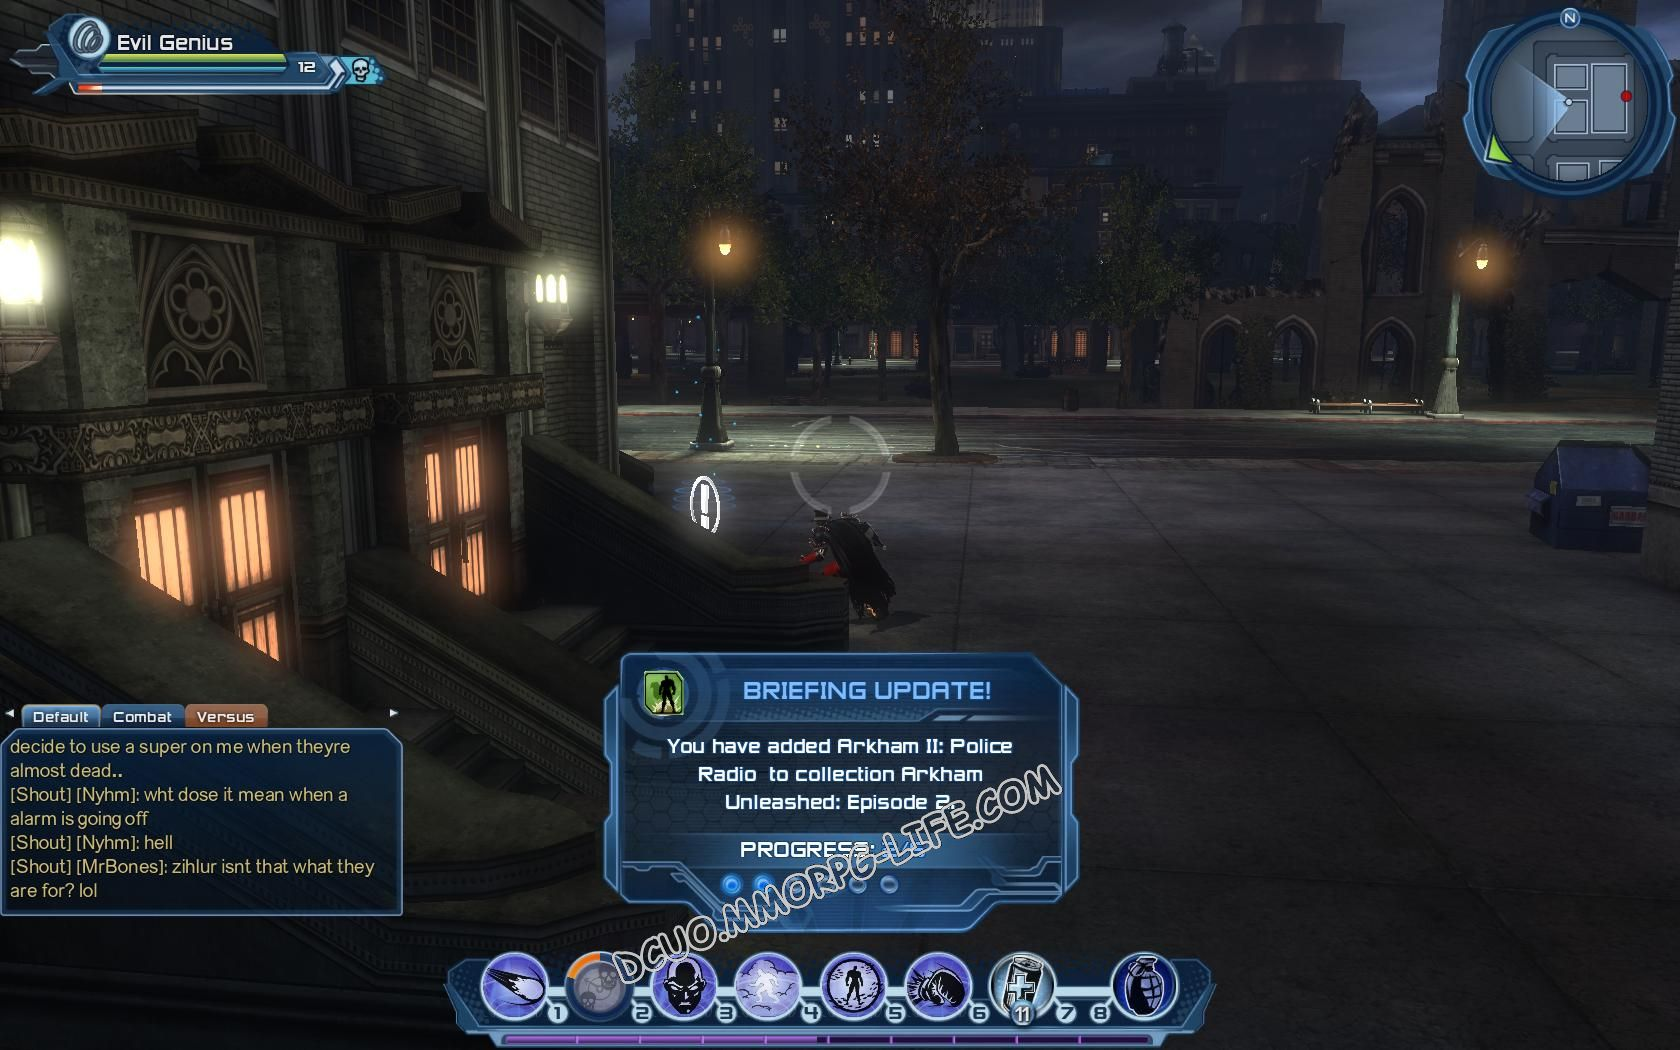 Briefing: Arkham Unleashed: Episode 2, step 3 Arkham II: Police Radio  image 720 middle size